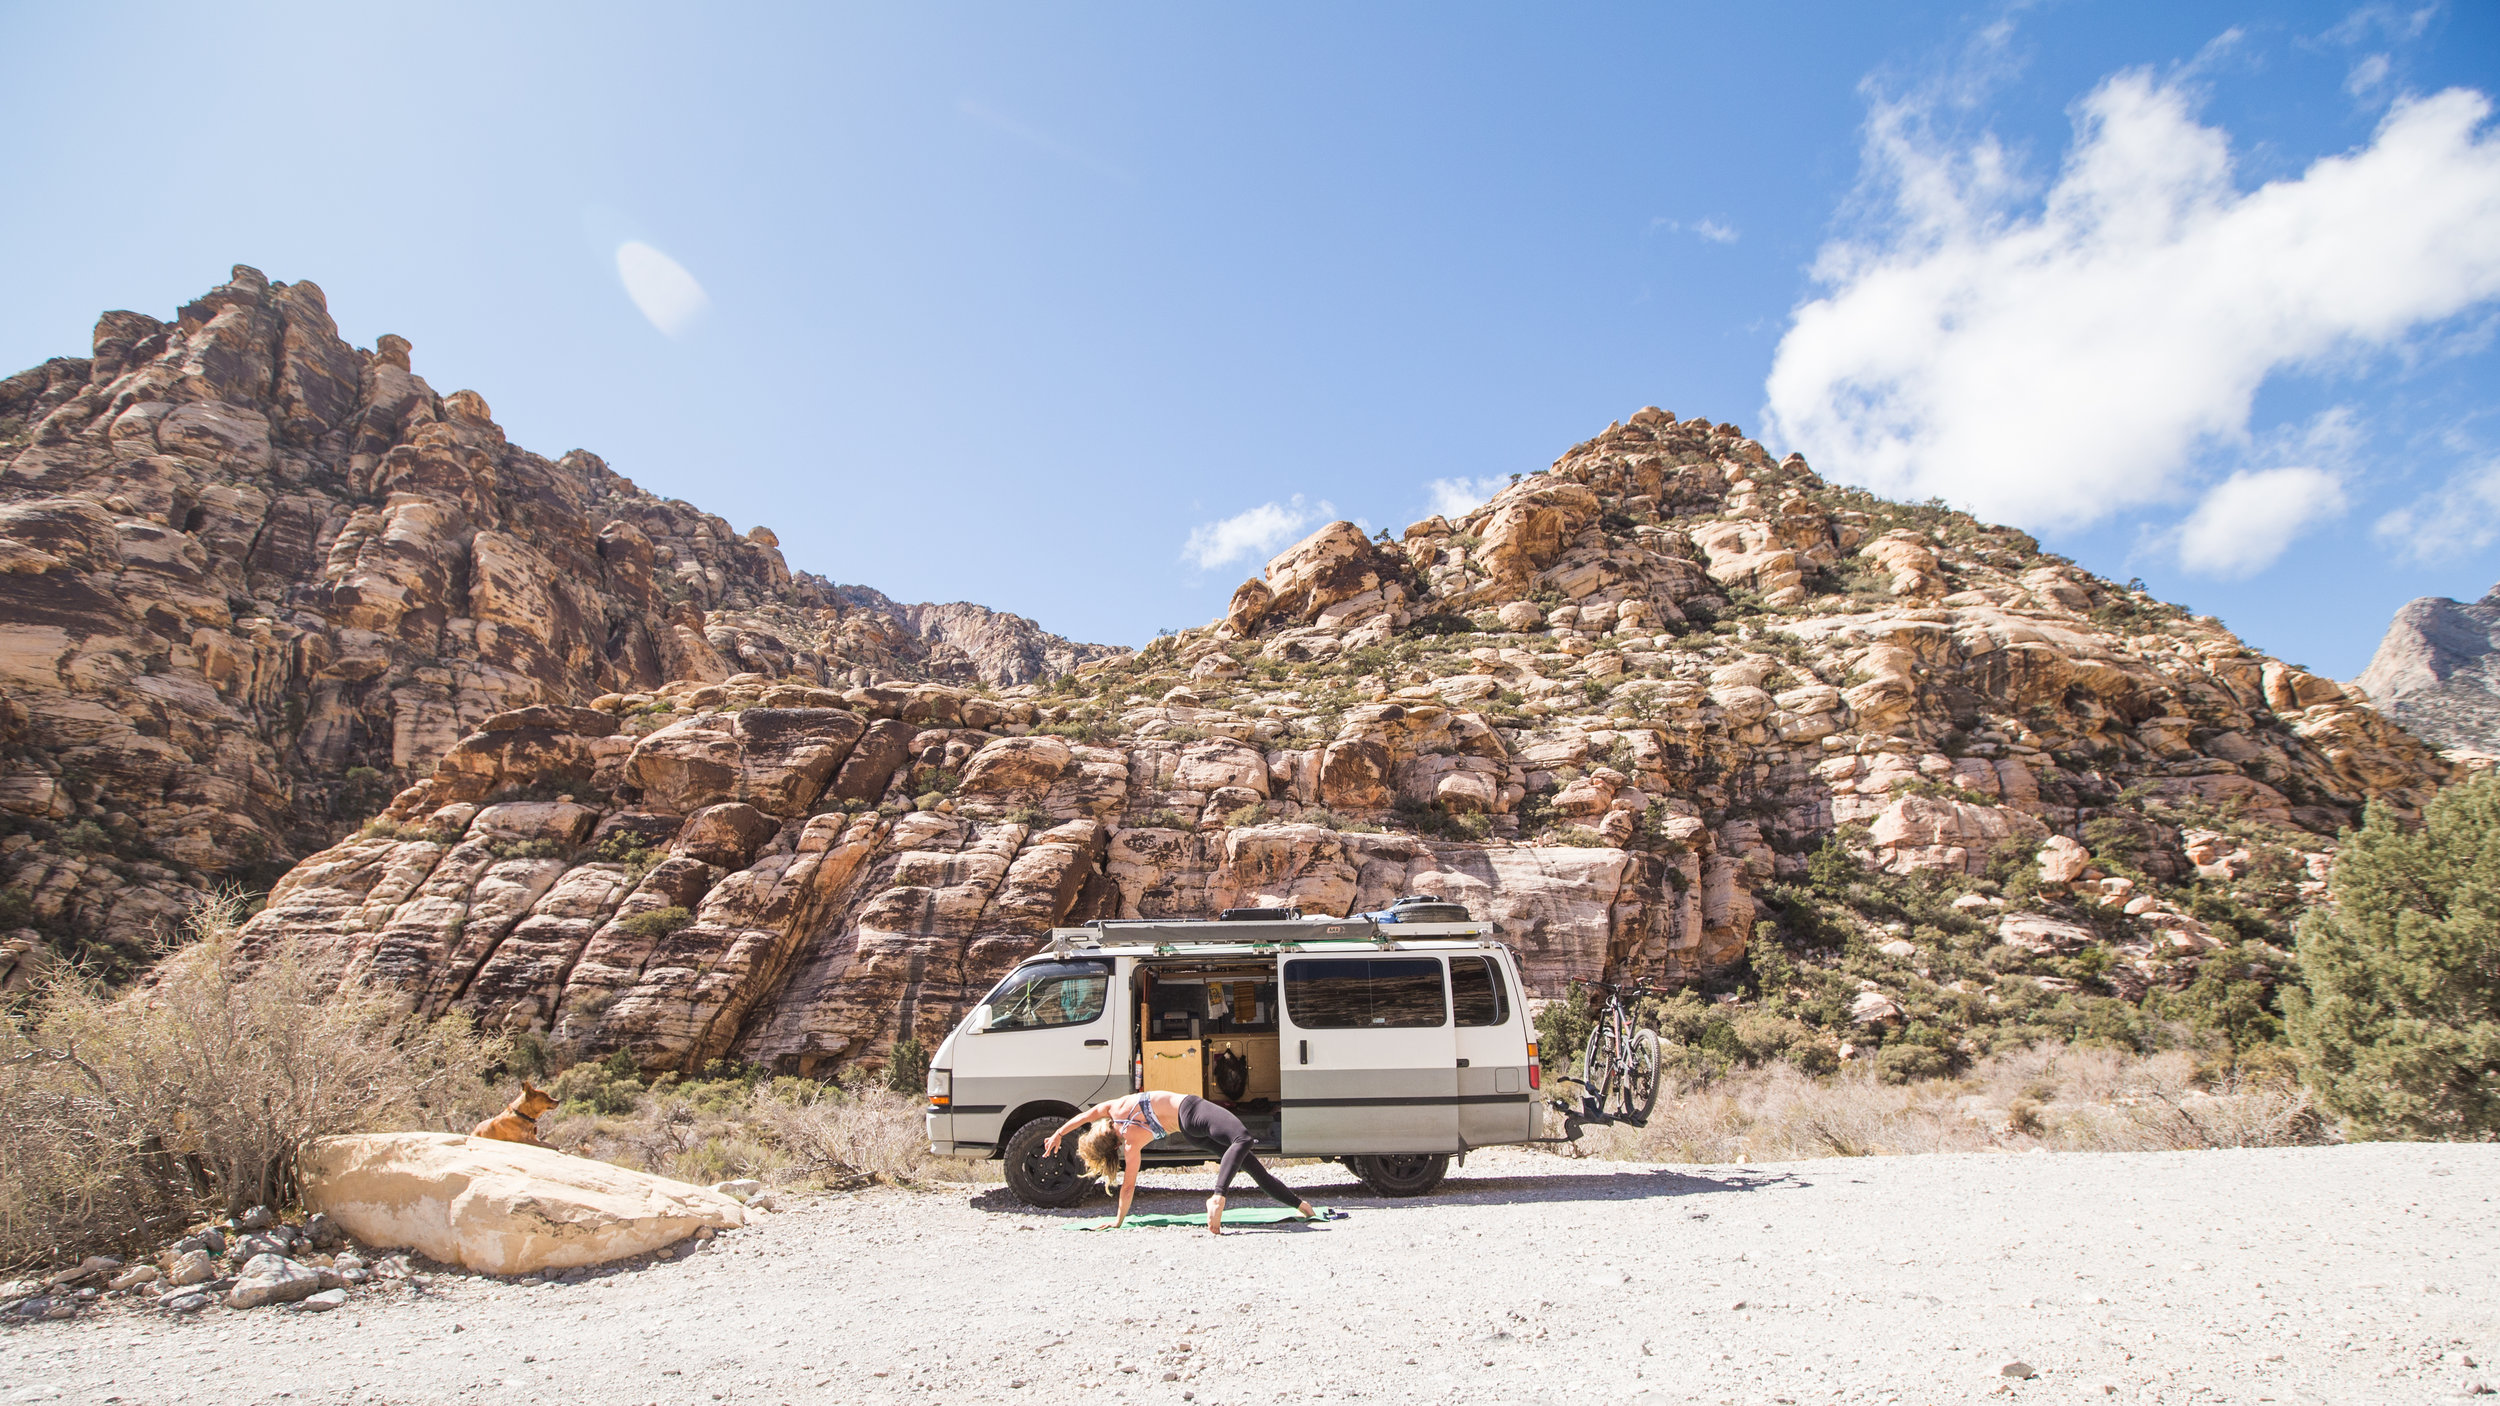 Van yoga at its finest in Red Rock Canyon.